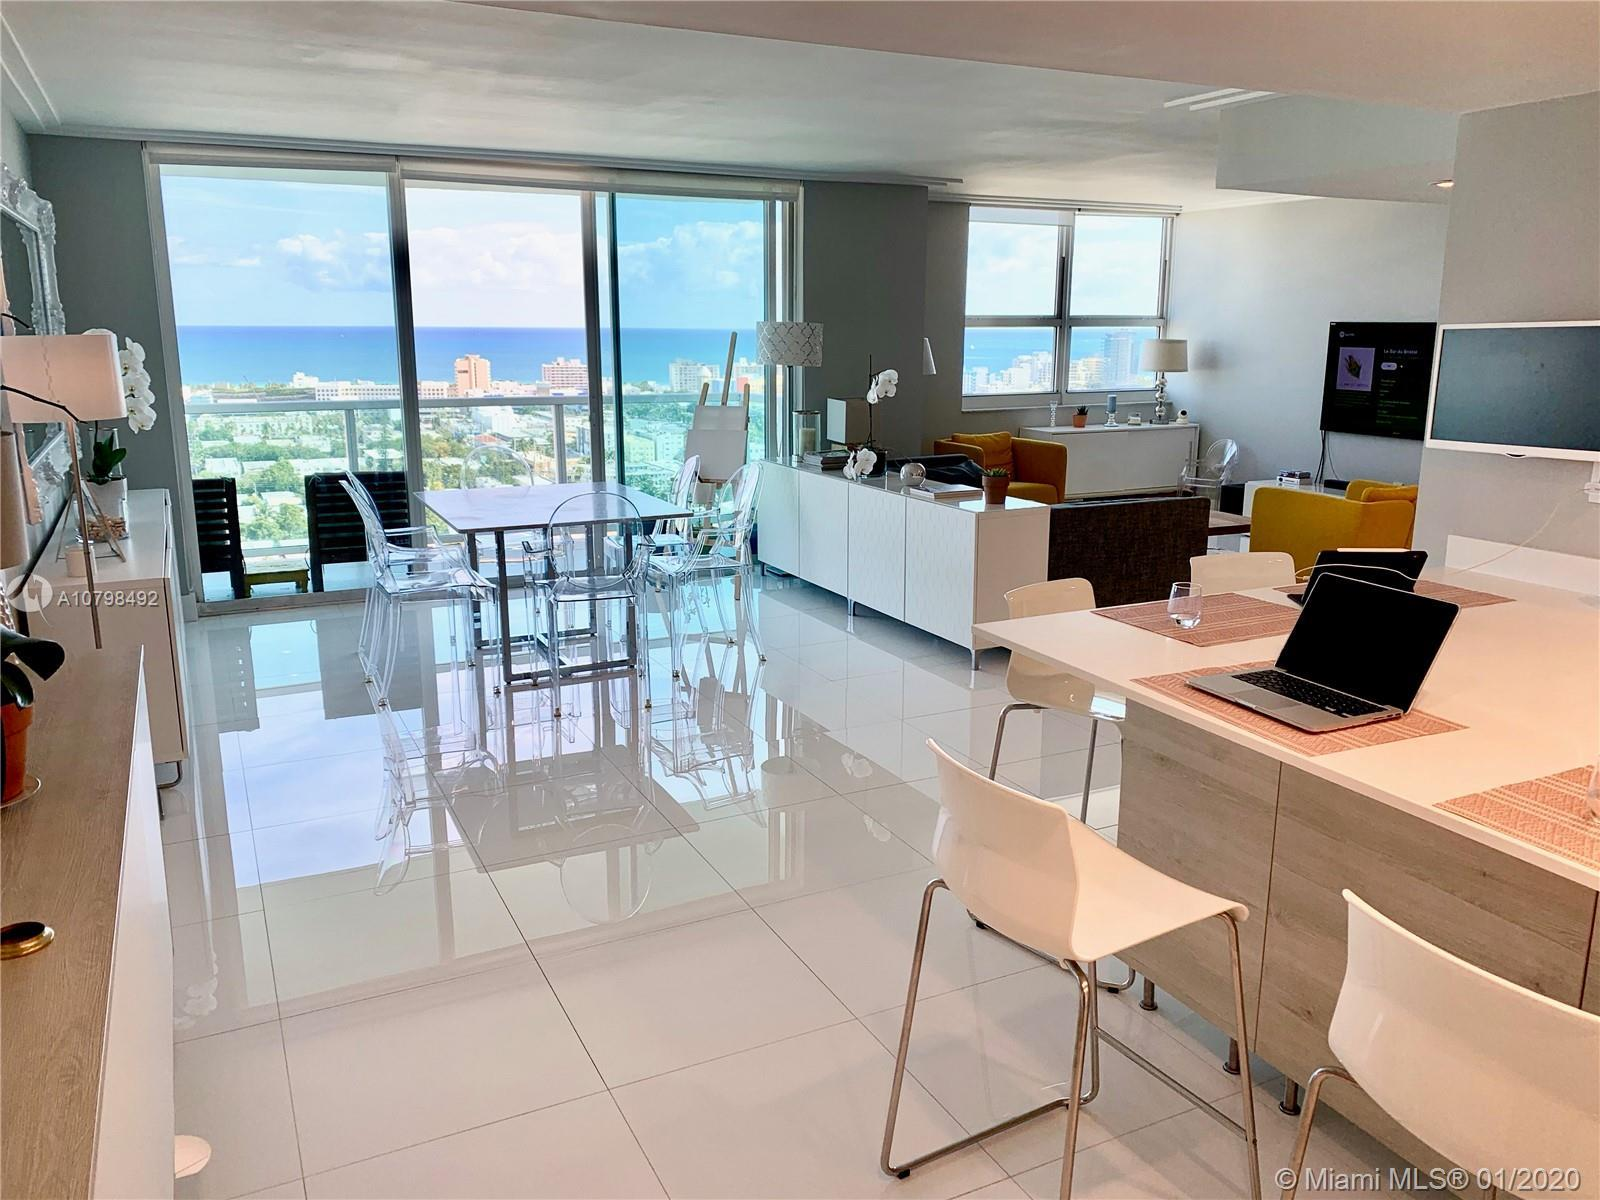 Unique Beautiful 3 bedrooms converted in a spacious 2 bedrooms on the 26th floor with unobstructed 1